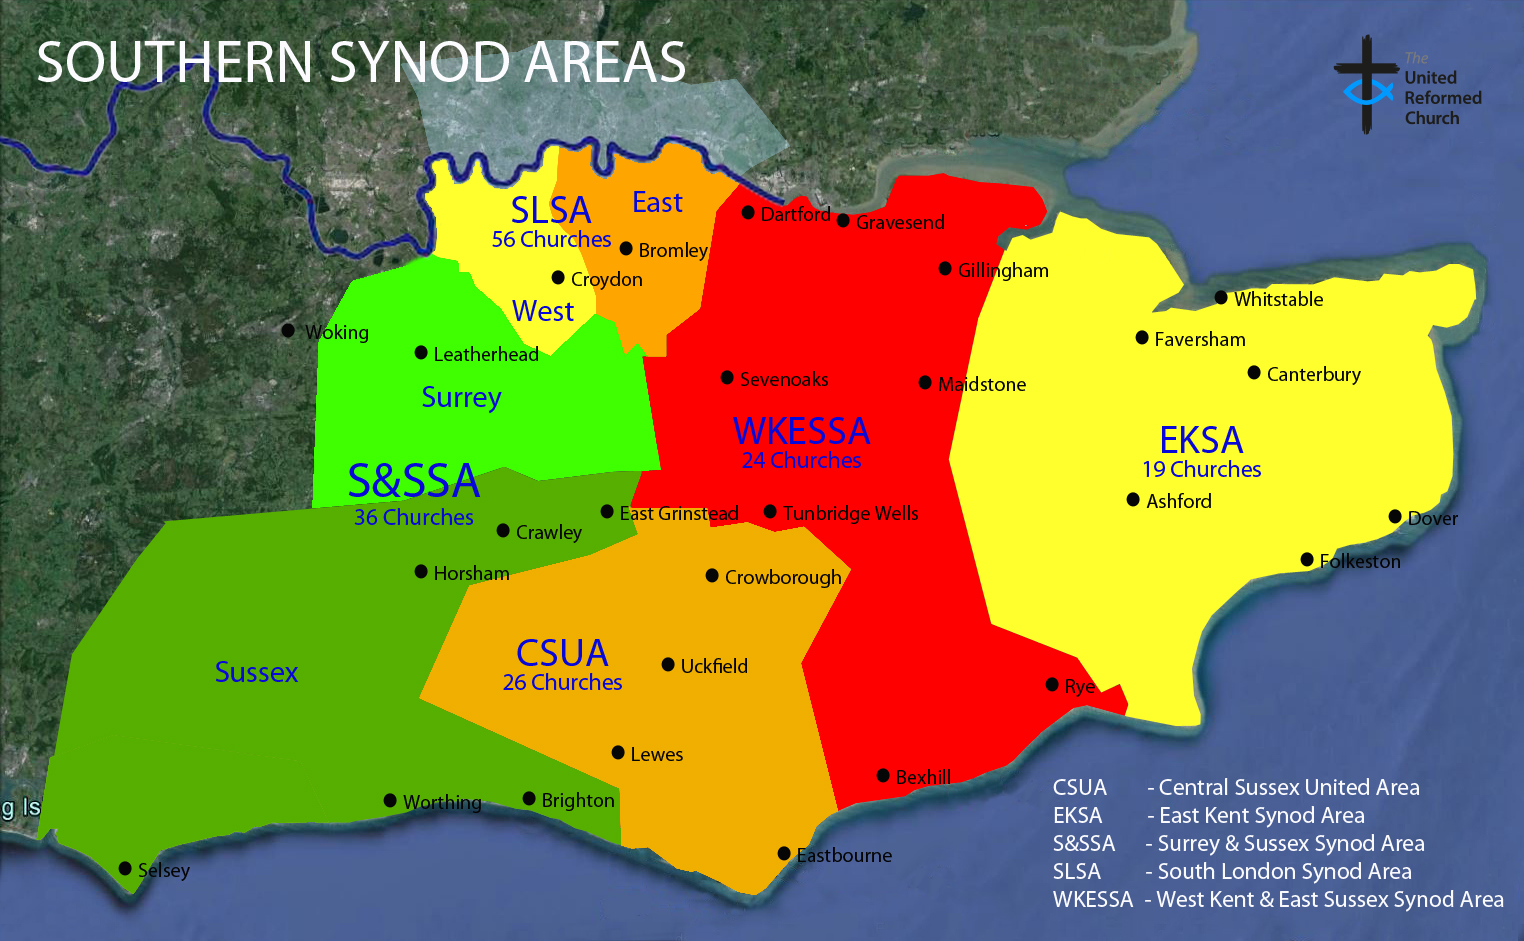 synod-areas-map-minus-swsua-13-10-16